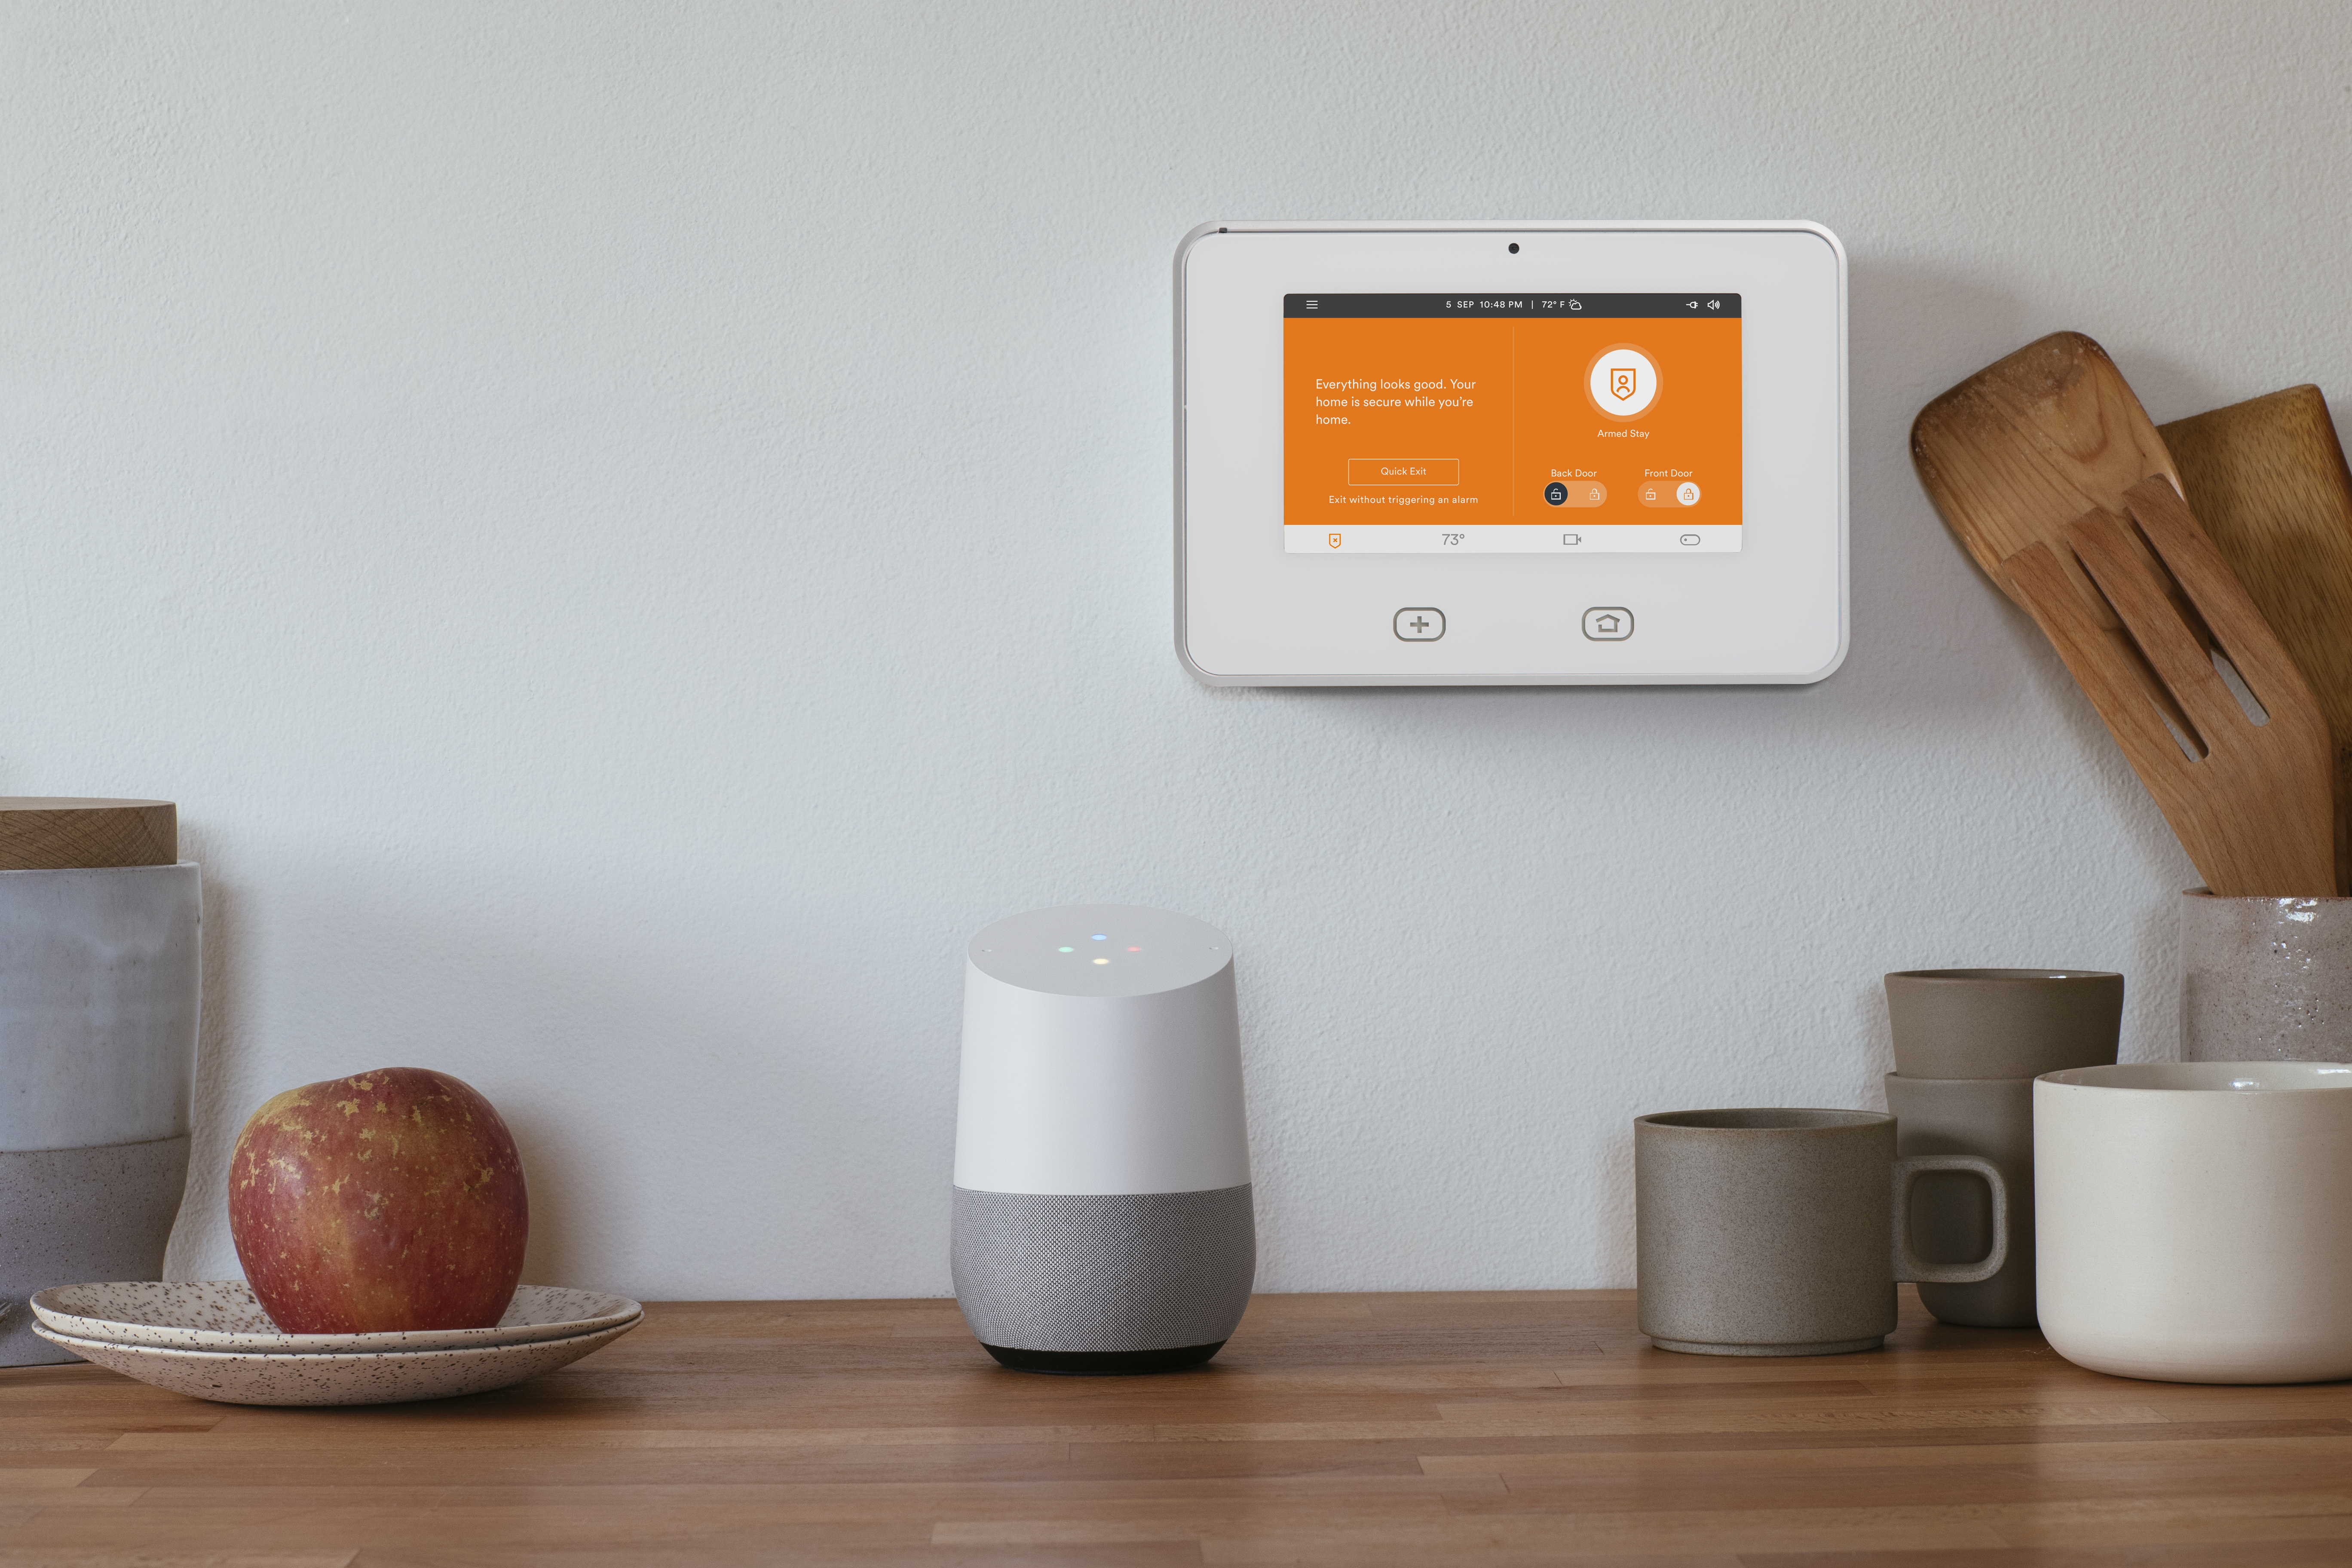 """Vivint customers can simply say """"Ok Google"""" to control smart locks, lights, cameras, garage doors, thermostats and their security system. (Photo: Business Wire)"""